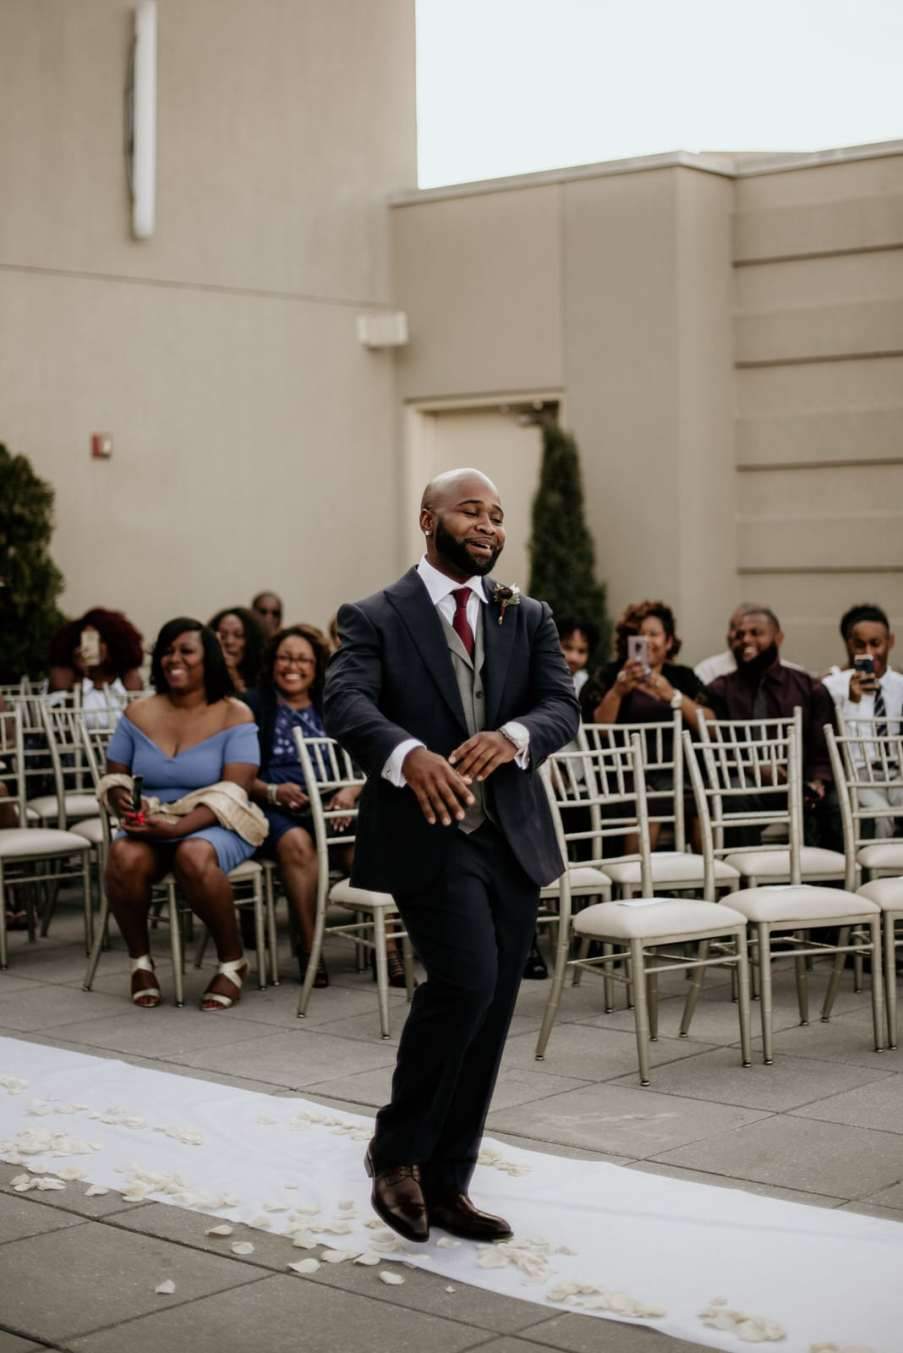 Groom dancing in the aisle